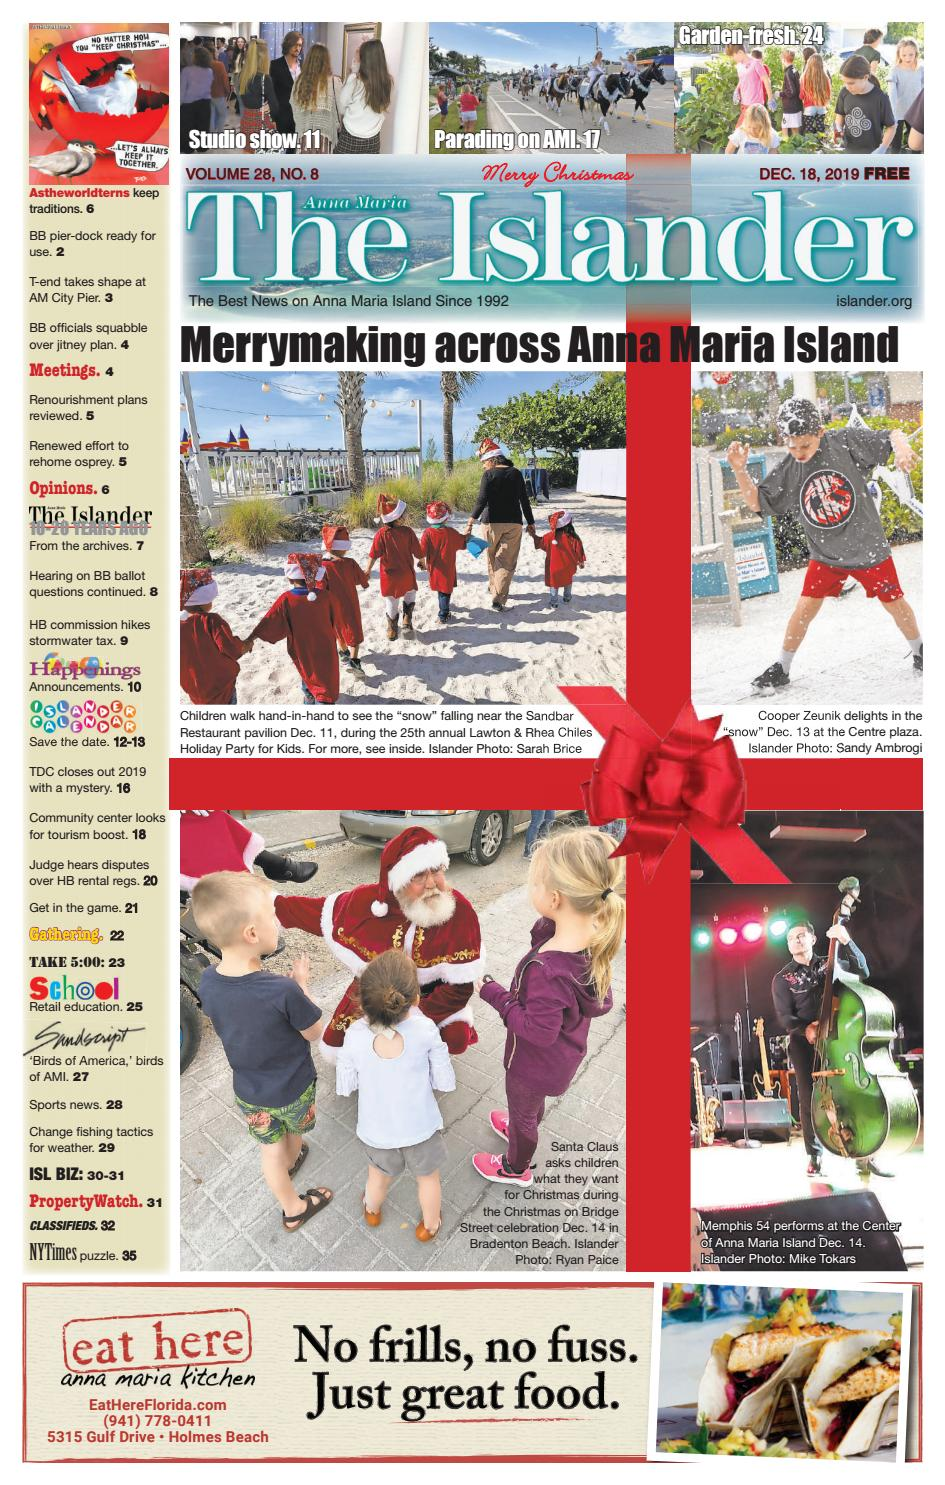 Livability'S Annual Christmas Carol Service 2020 In London, December 11 The Islander Newspaper E Edition: Wednesday, Dec. 18, 2019 by The